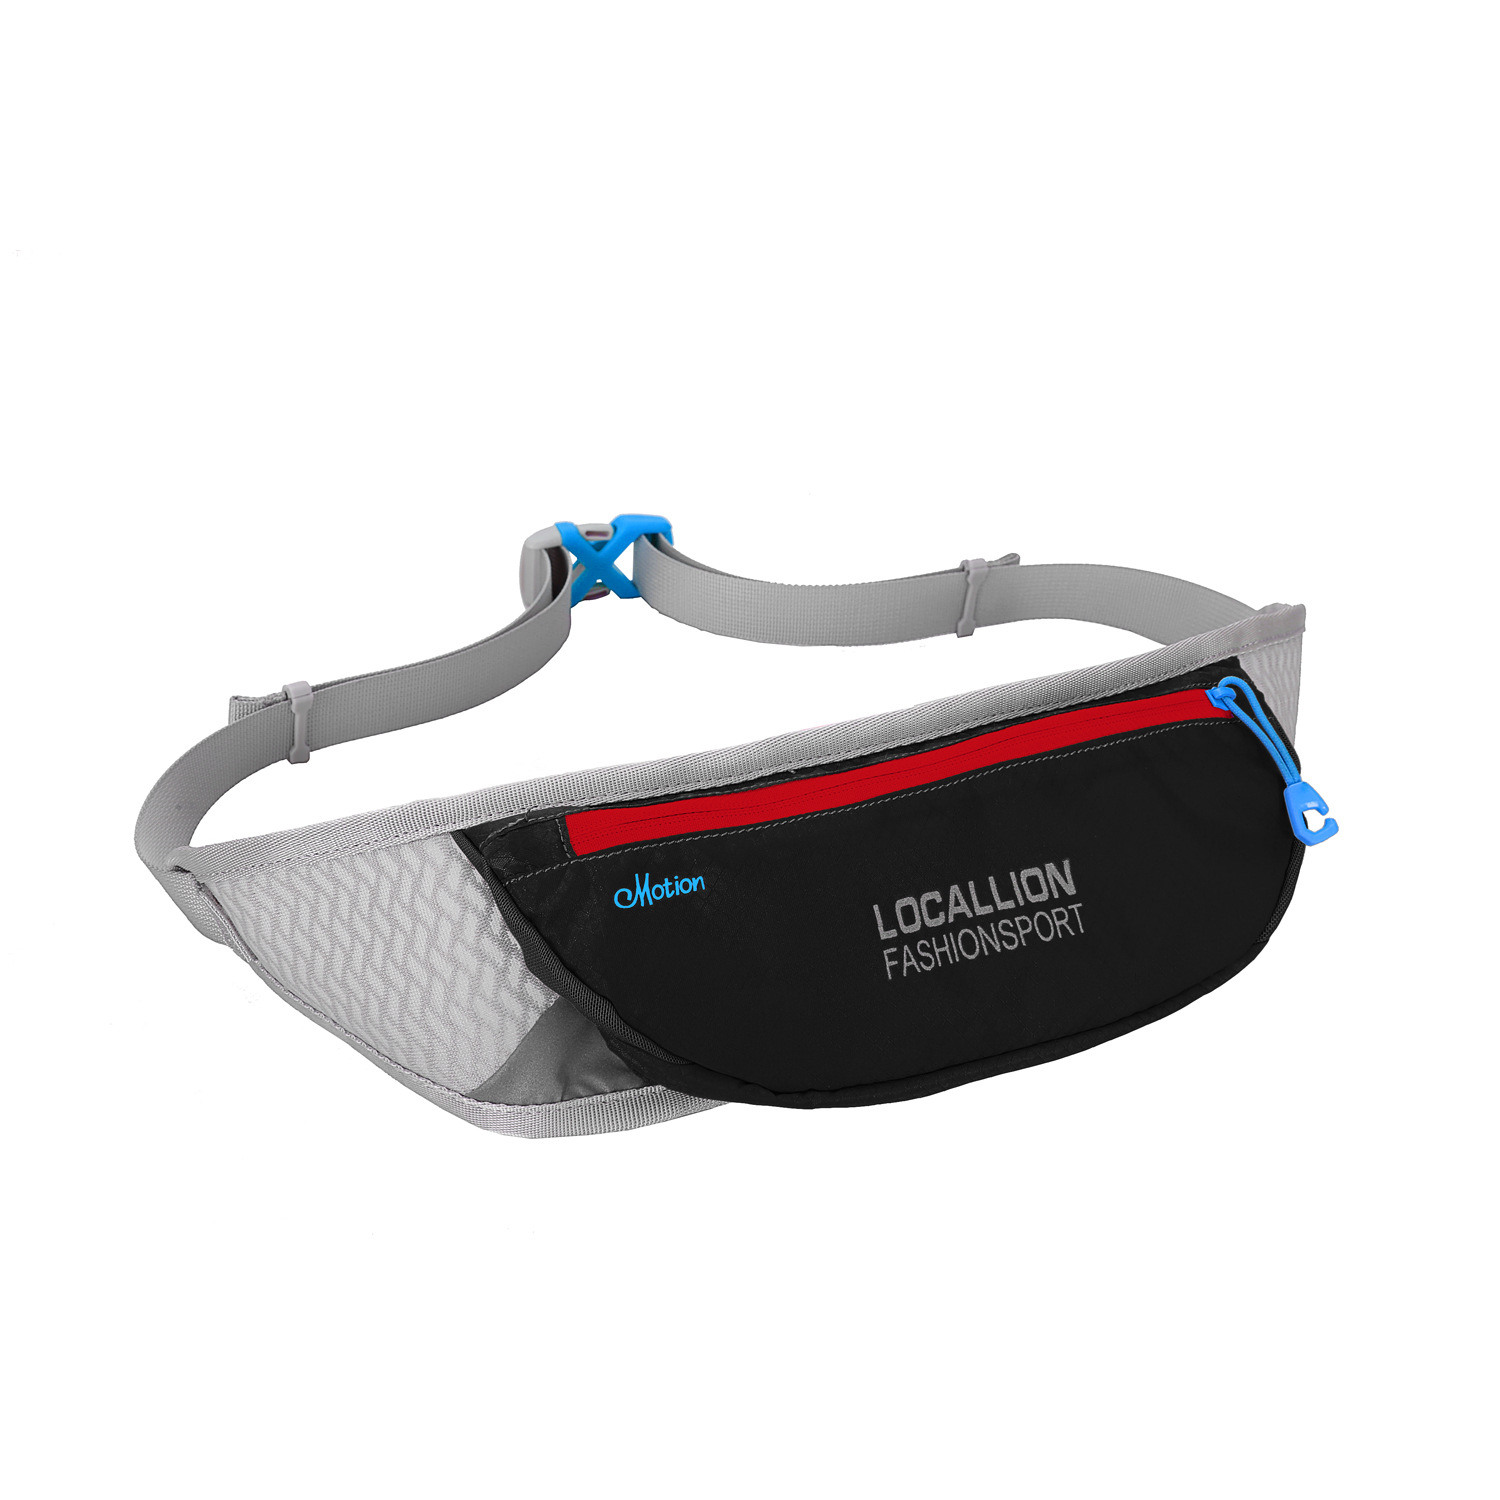 B155 Multifunctional outdoor running belt bag Sports and fitness pocket Invisible small mobile phone marathon bag 10 Inch